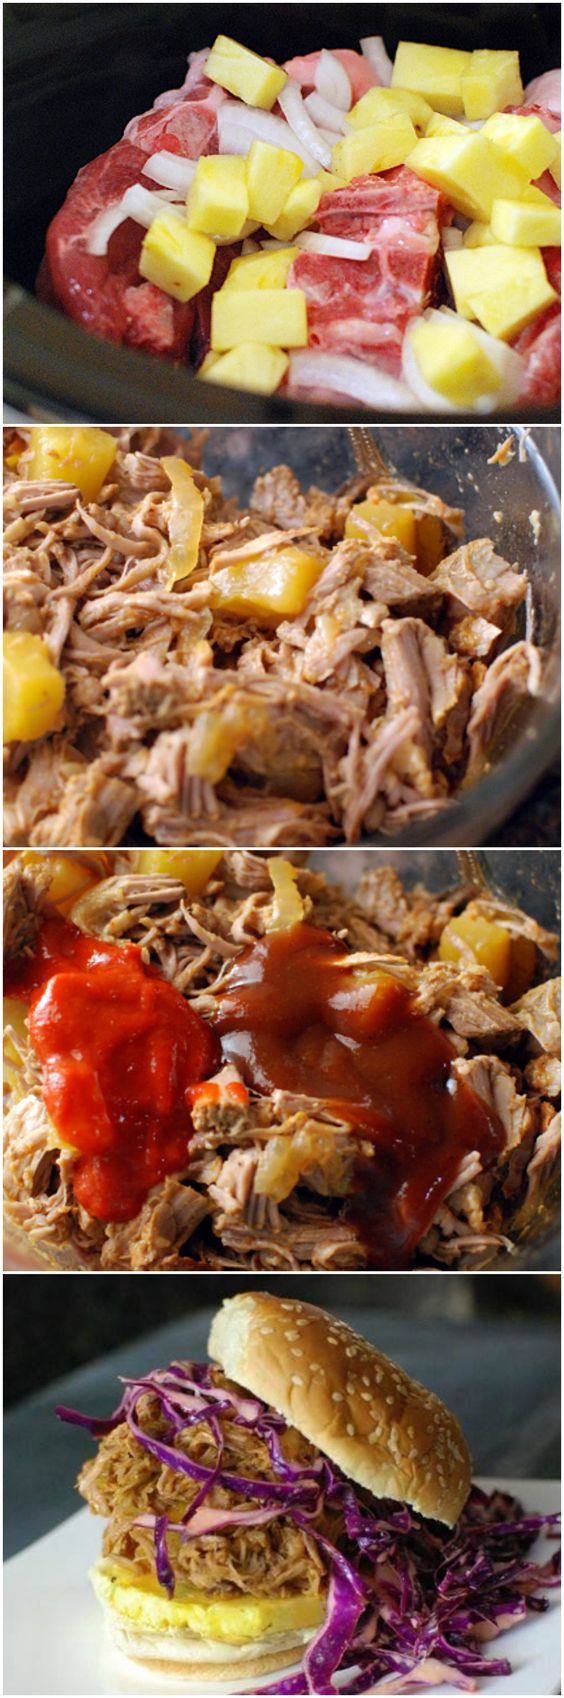 pulled pork recipes pork recipes pork sandwich shredded pork cabbage ...